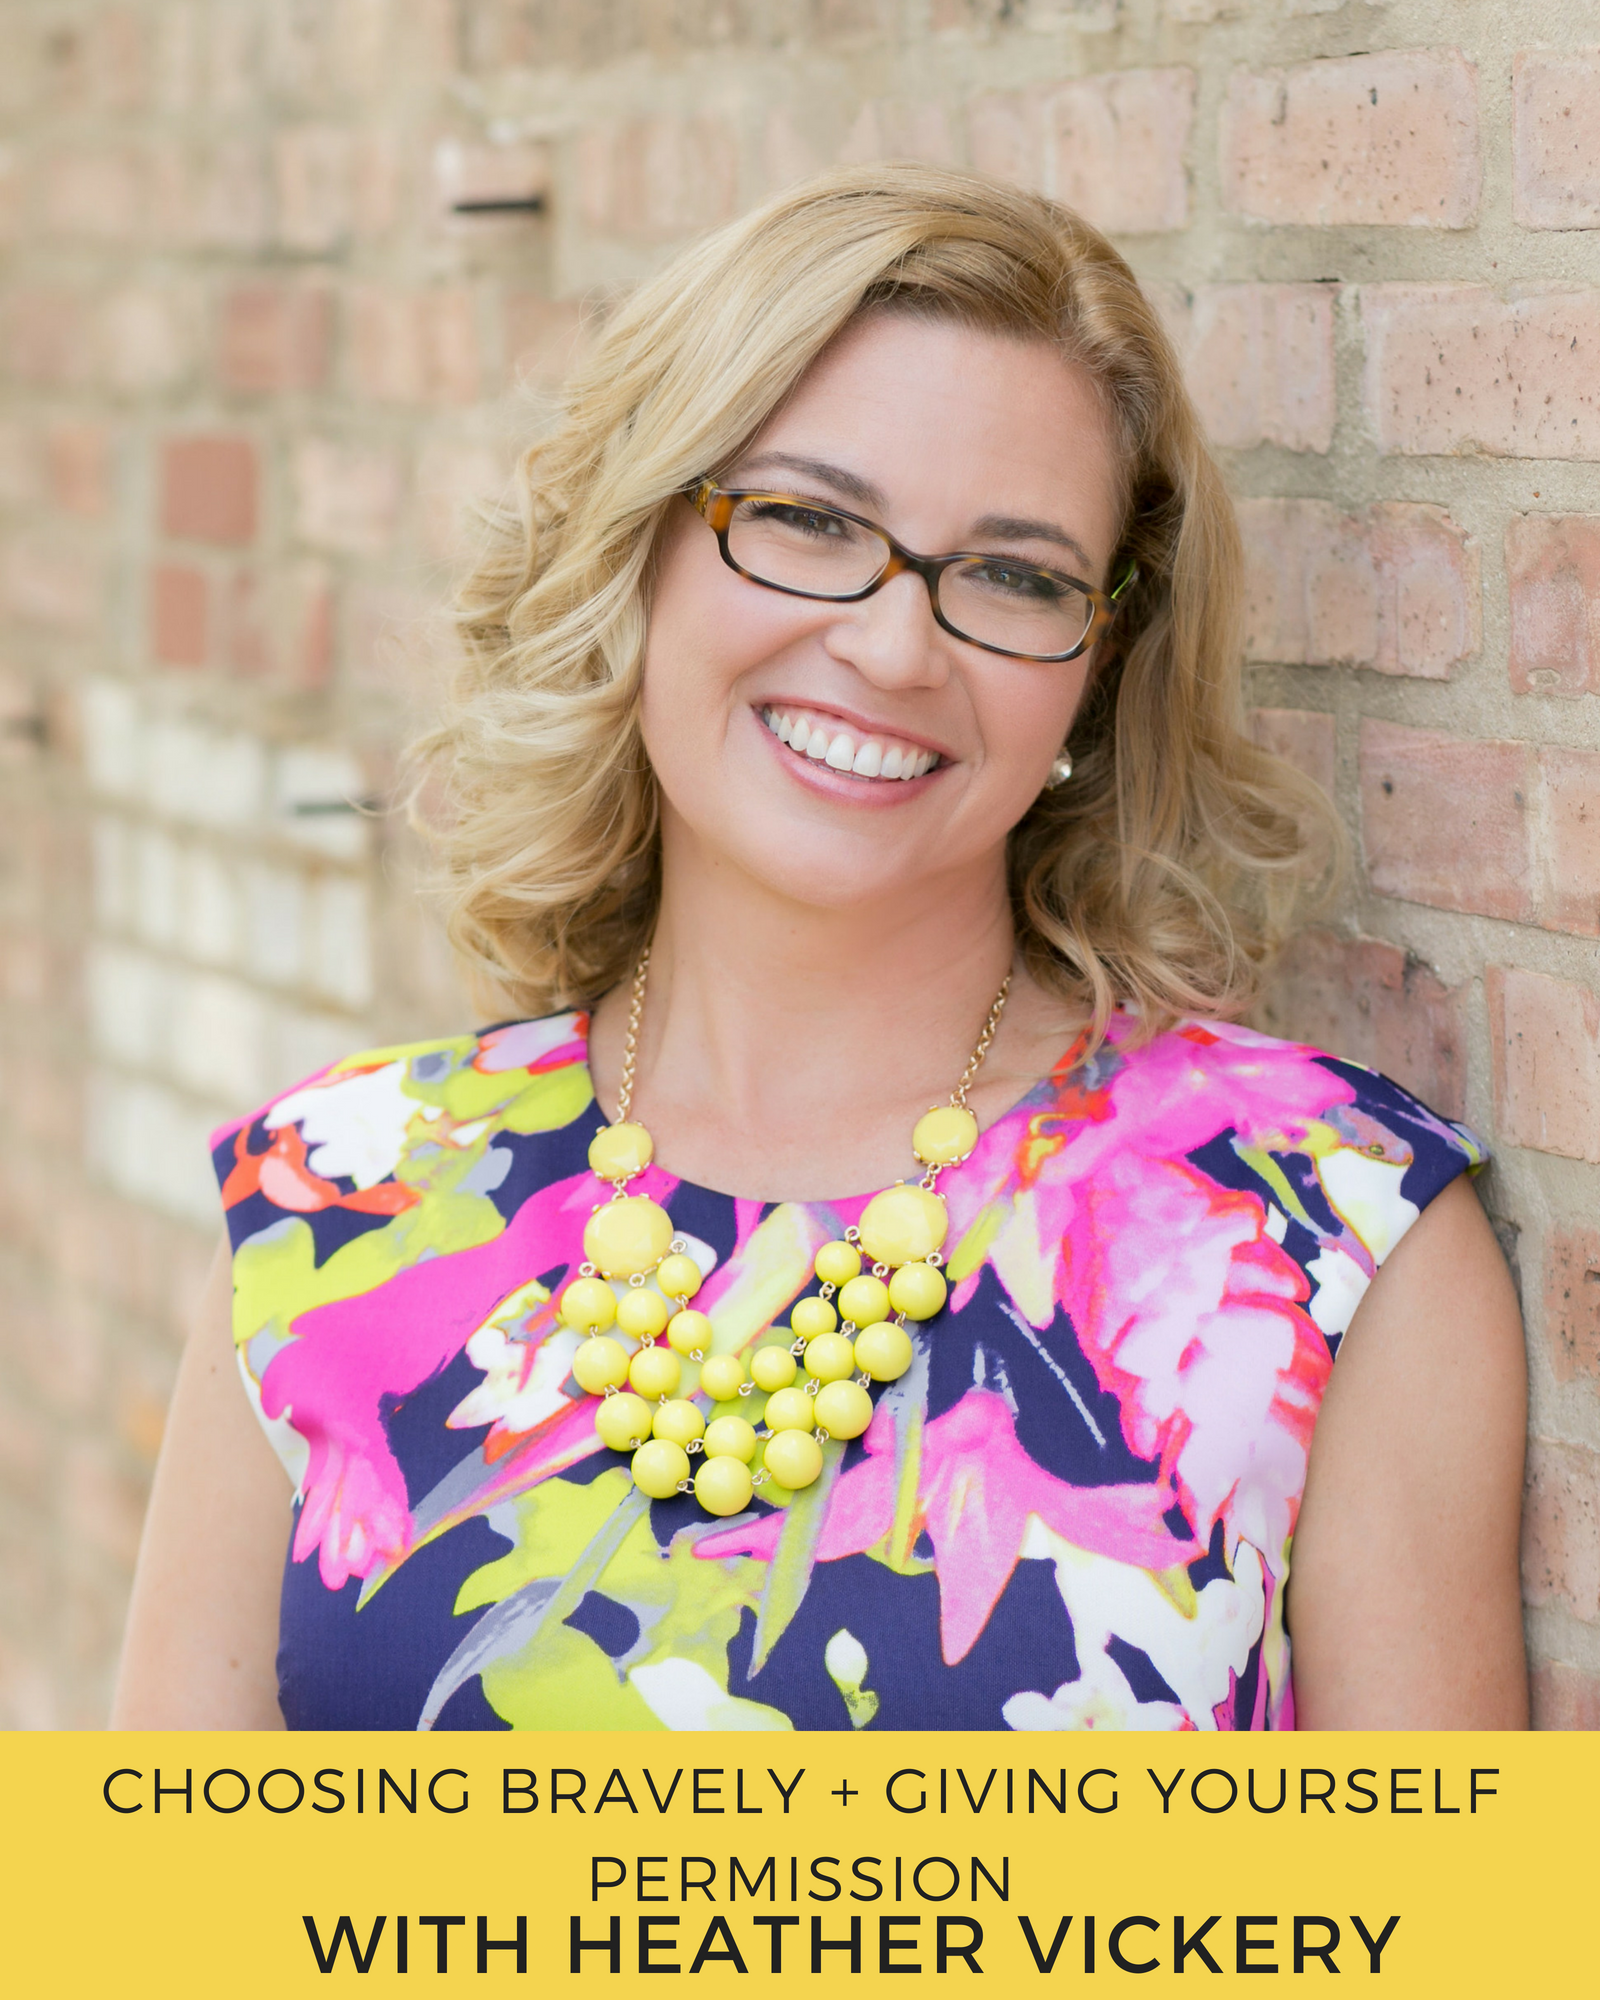 choosing-bravely-giving-yourself-permission-with-heather-vickery.png